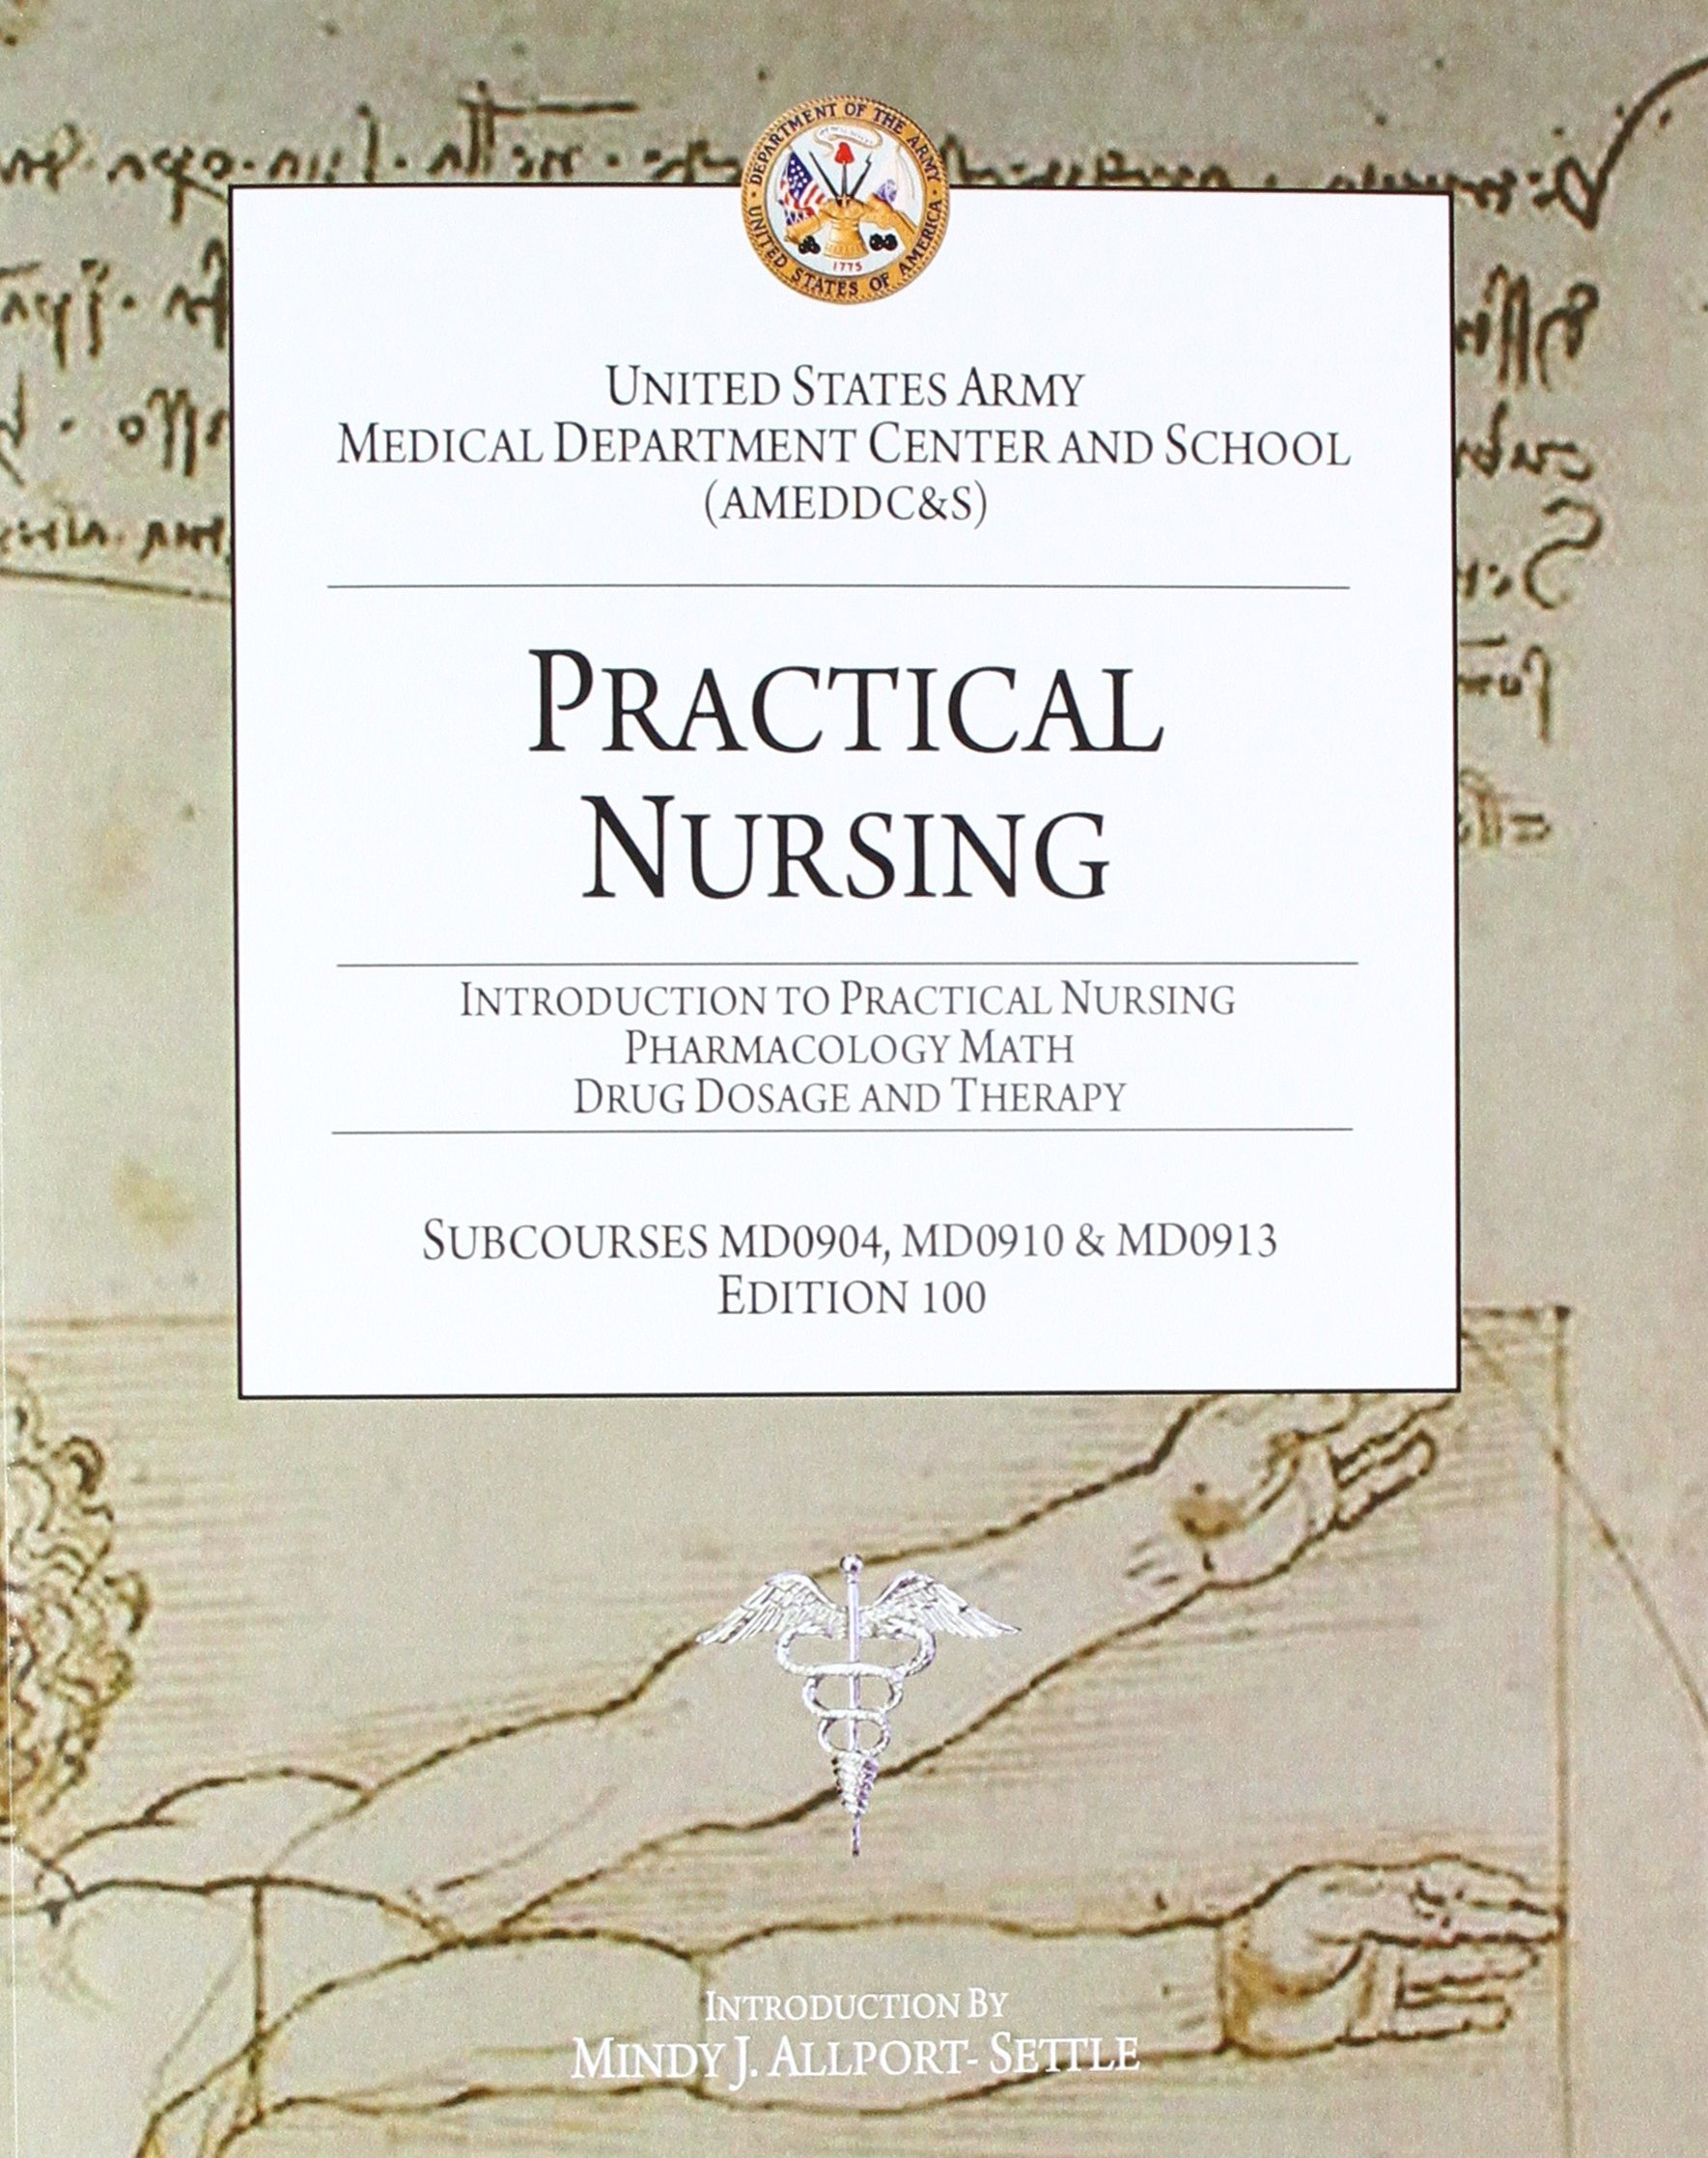 Practical Nursing: Introduction to Practical Nursing, Pharmacology Math,  and Drug Dosage and Therapy: U. S. Army, Mindy J. Allport-Settle:  9781937258023: ...